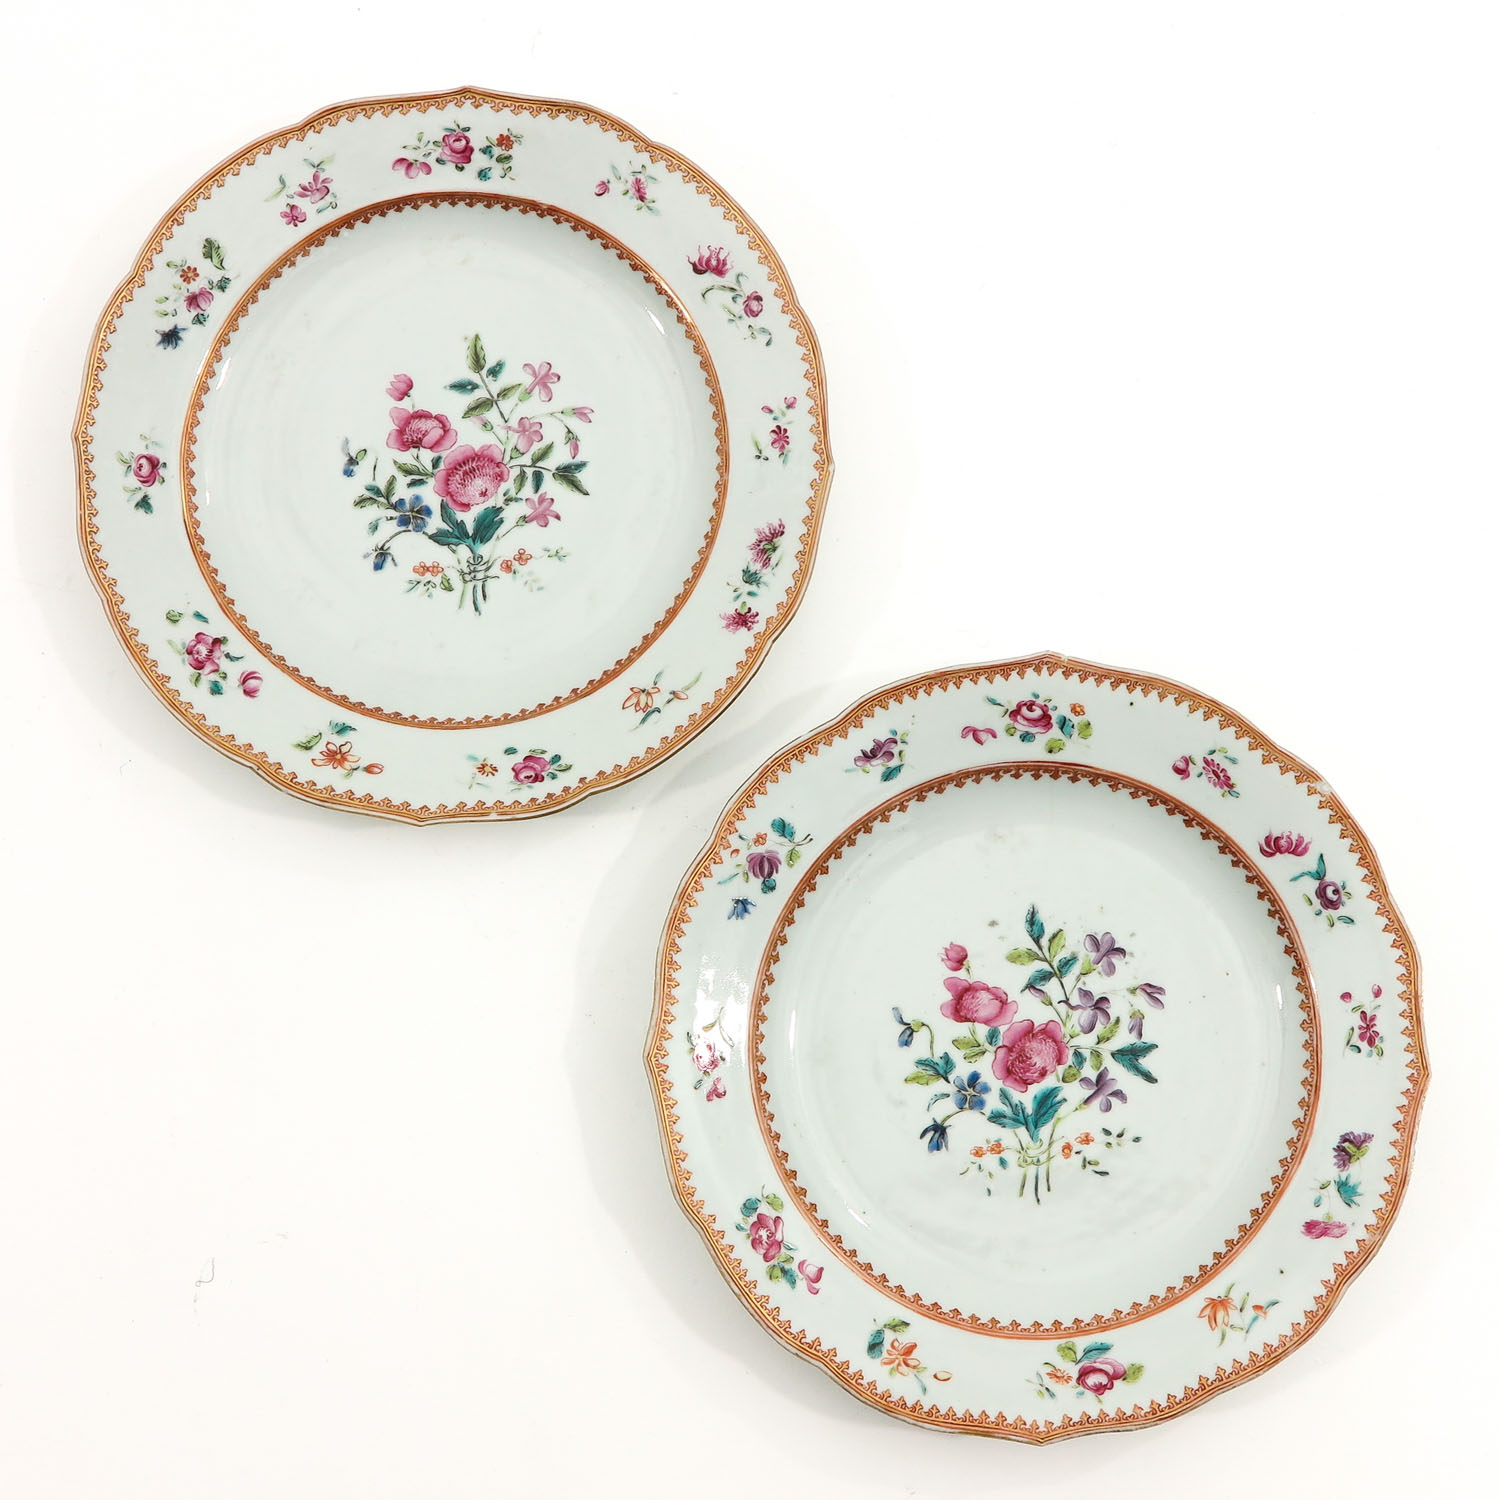 A Series of 8 Famille Rose Plates - Image 7 of 10